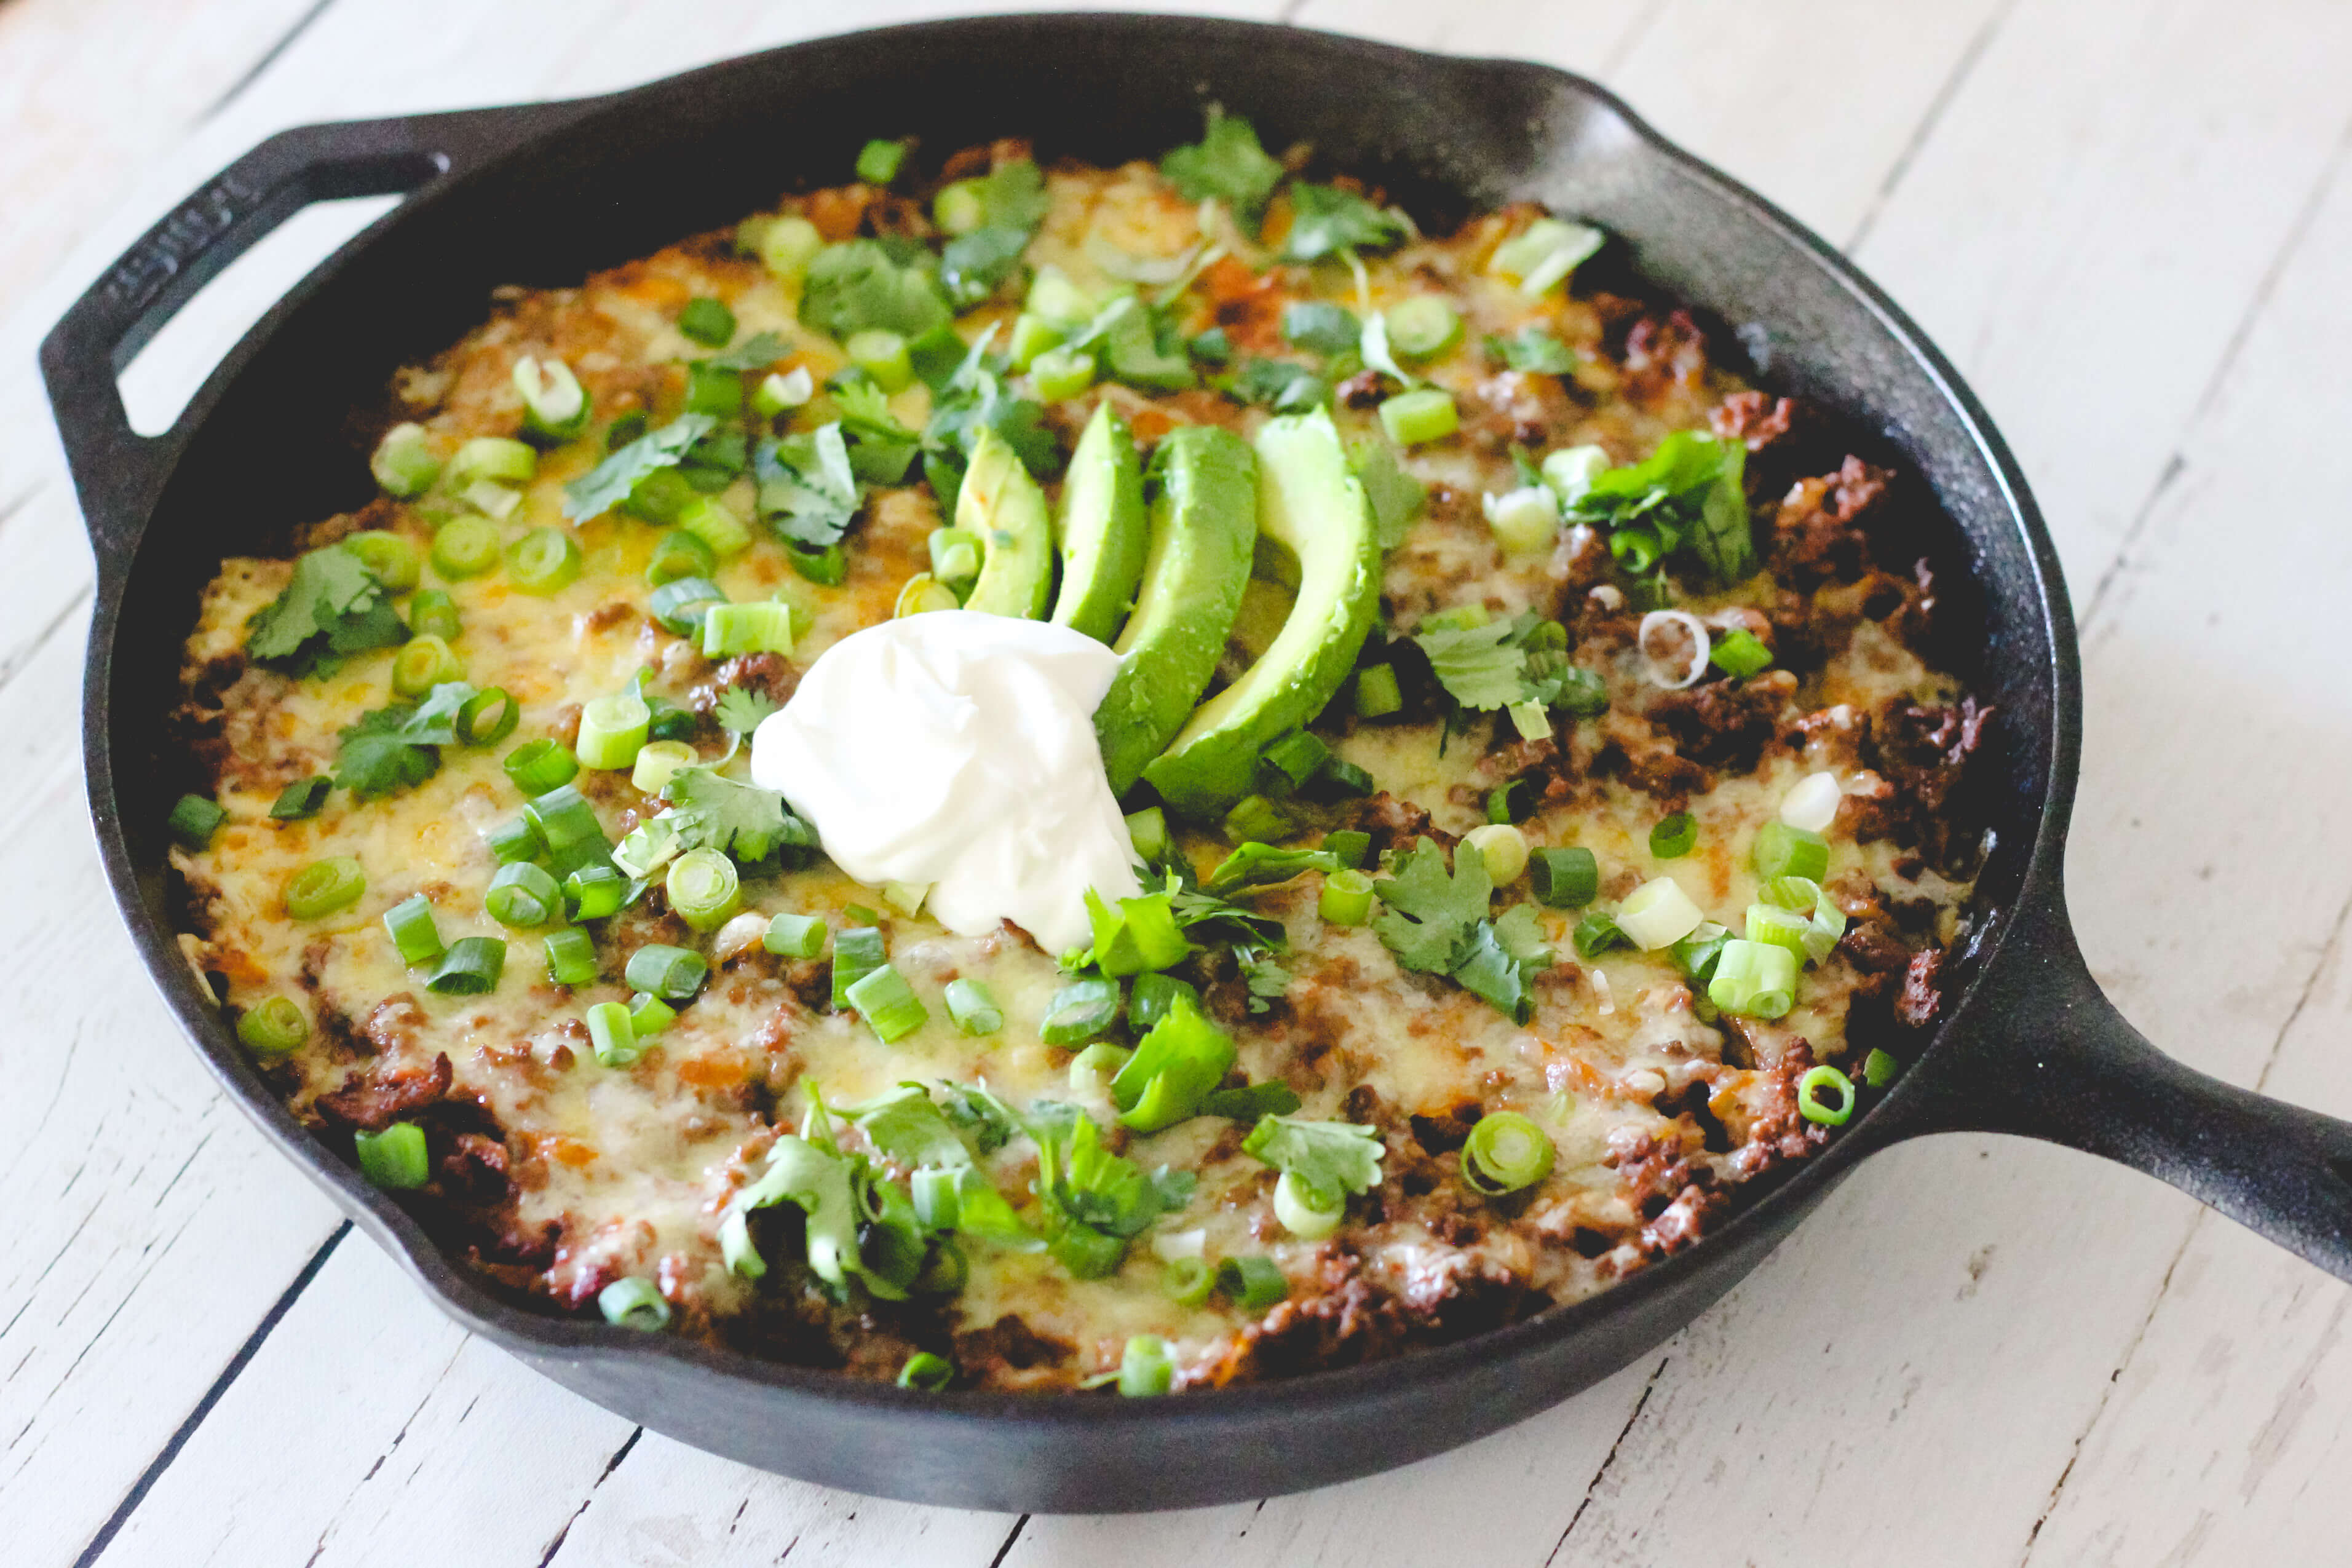 Tamale pie recipe with whole food ingredients.